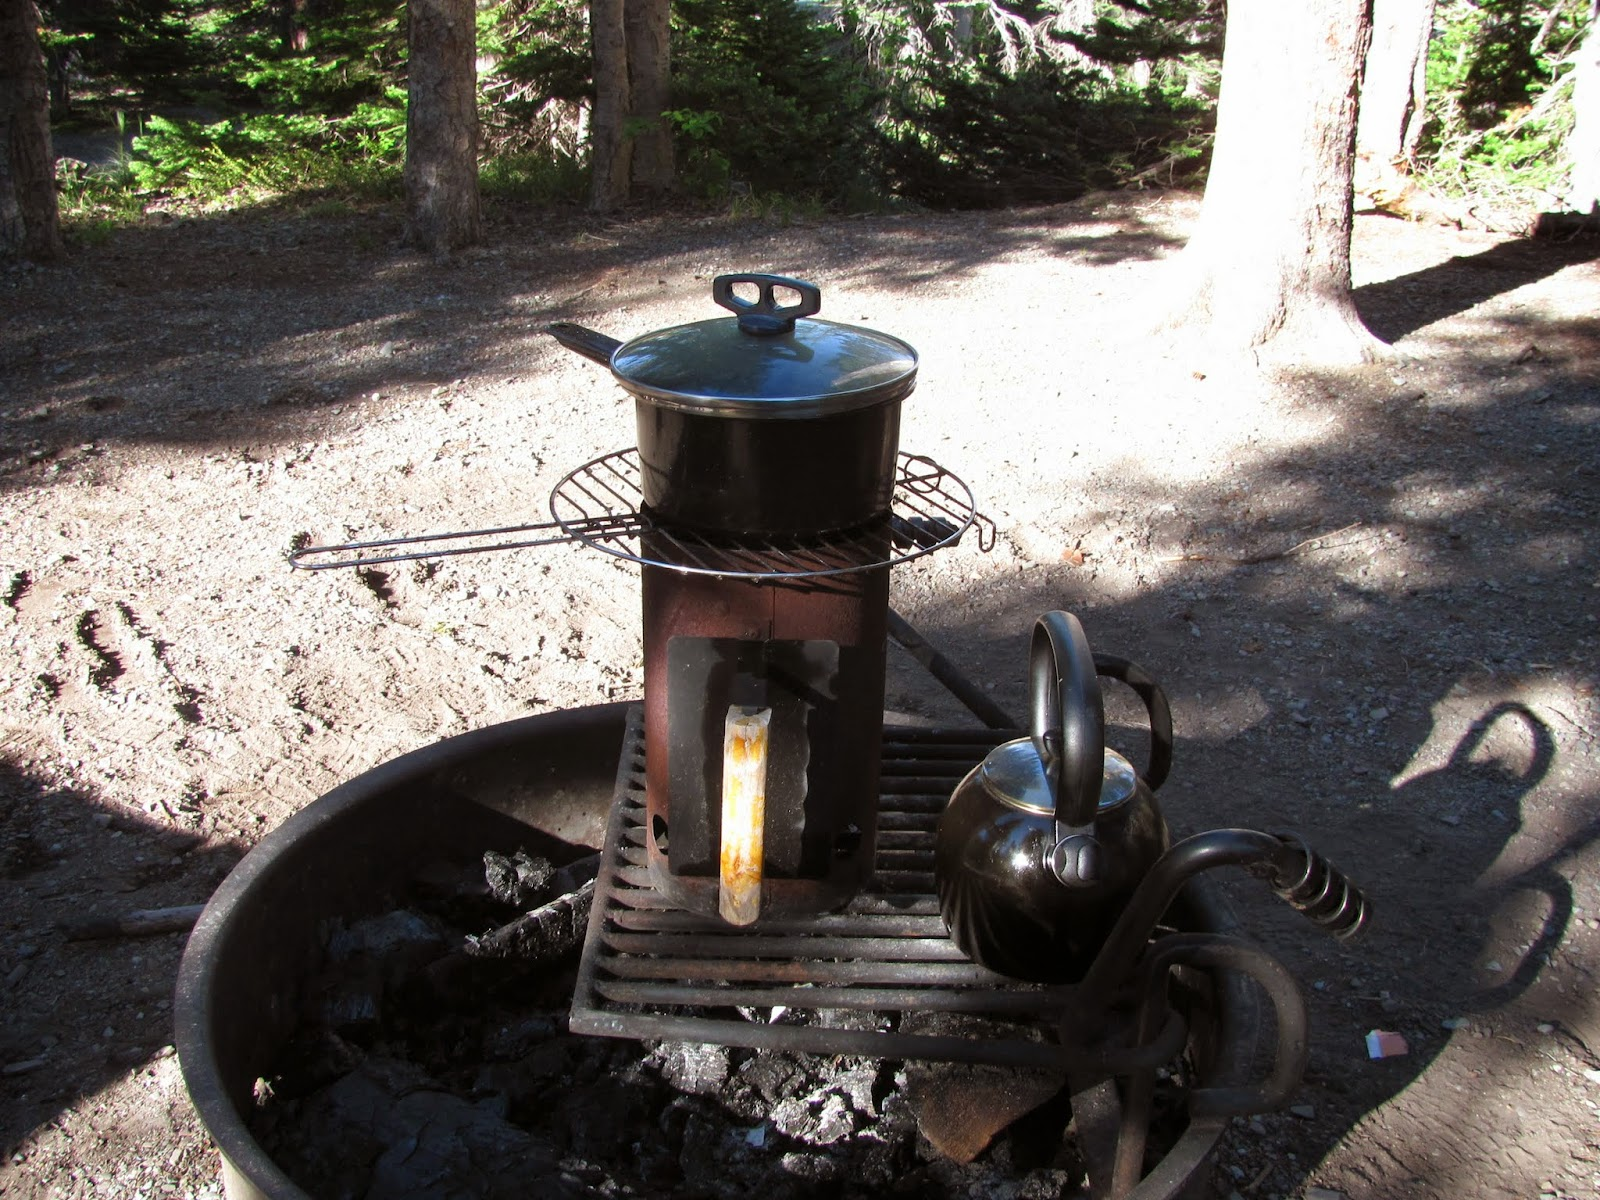 Coffee in the kettle and beans in the pot for breakfast at Two Medicine in Glacier National Park in Montana